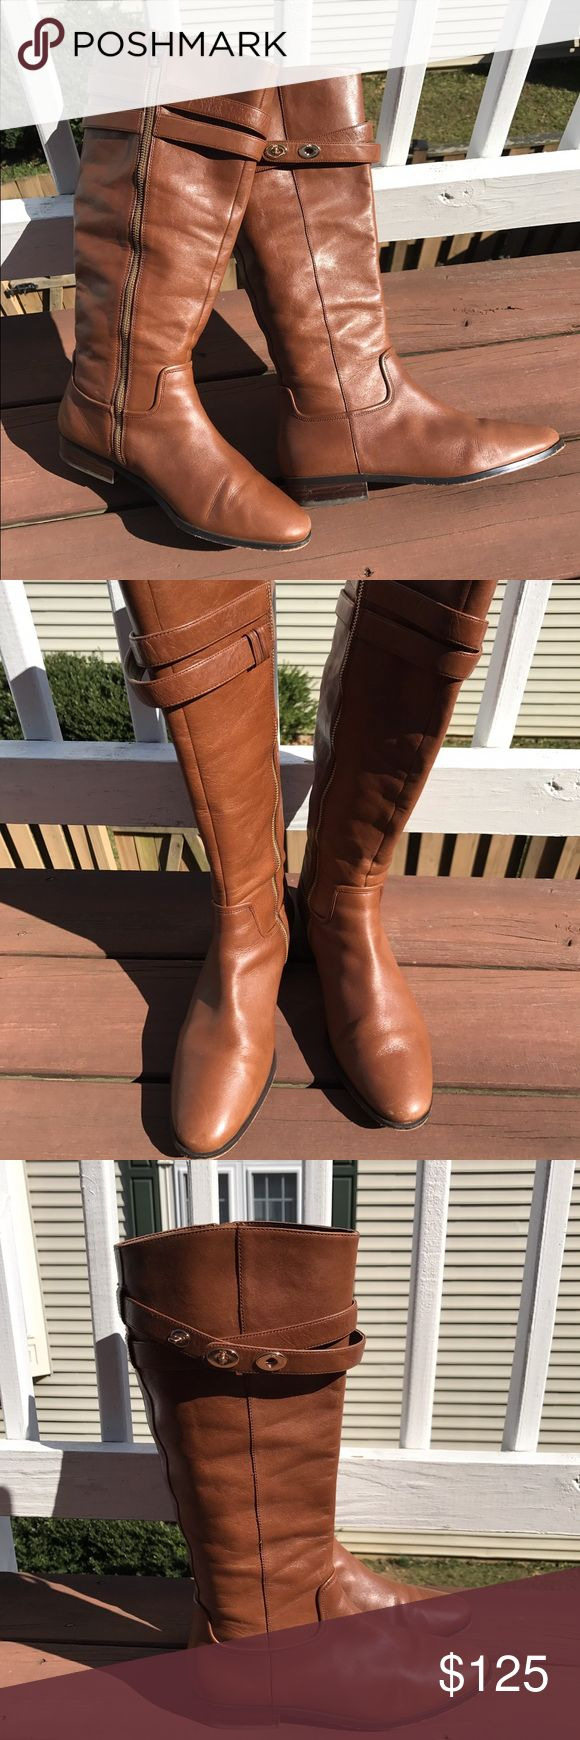 Authentic Coach british tan leather boots. Flat knee boots that I absolutely LOVE ❤️, but unfortunately, I've gained weight and my calf is too big for them. They are in great shape, only had a chance to wear them a couple times.  Get 'head and strut your stuff girl!!! 👢 Coach Shoes